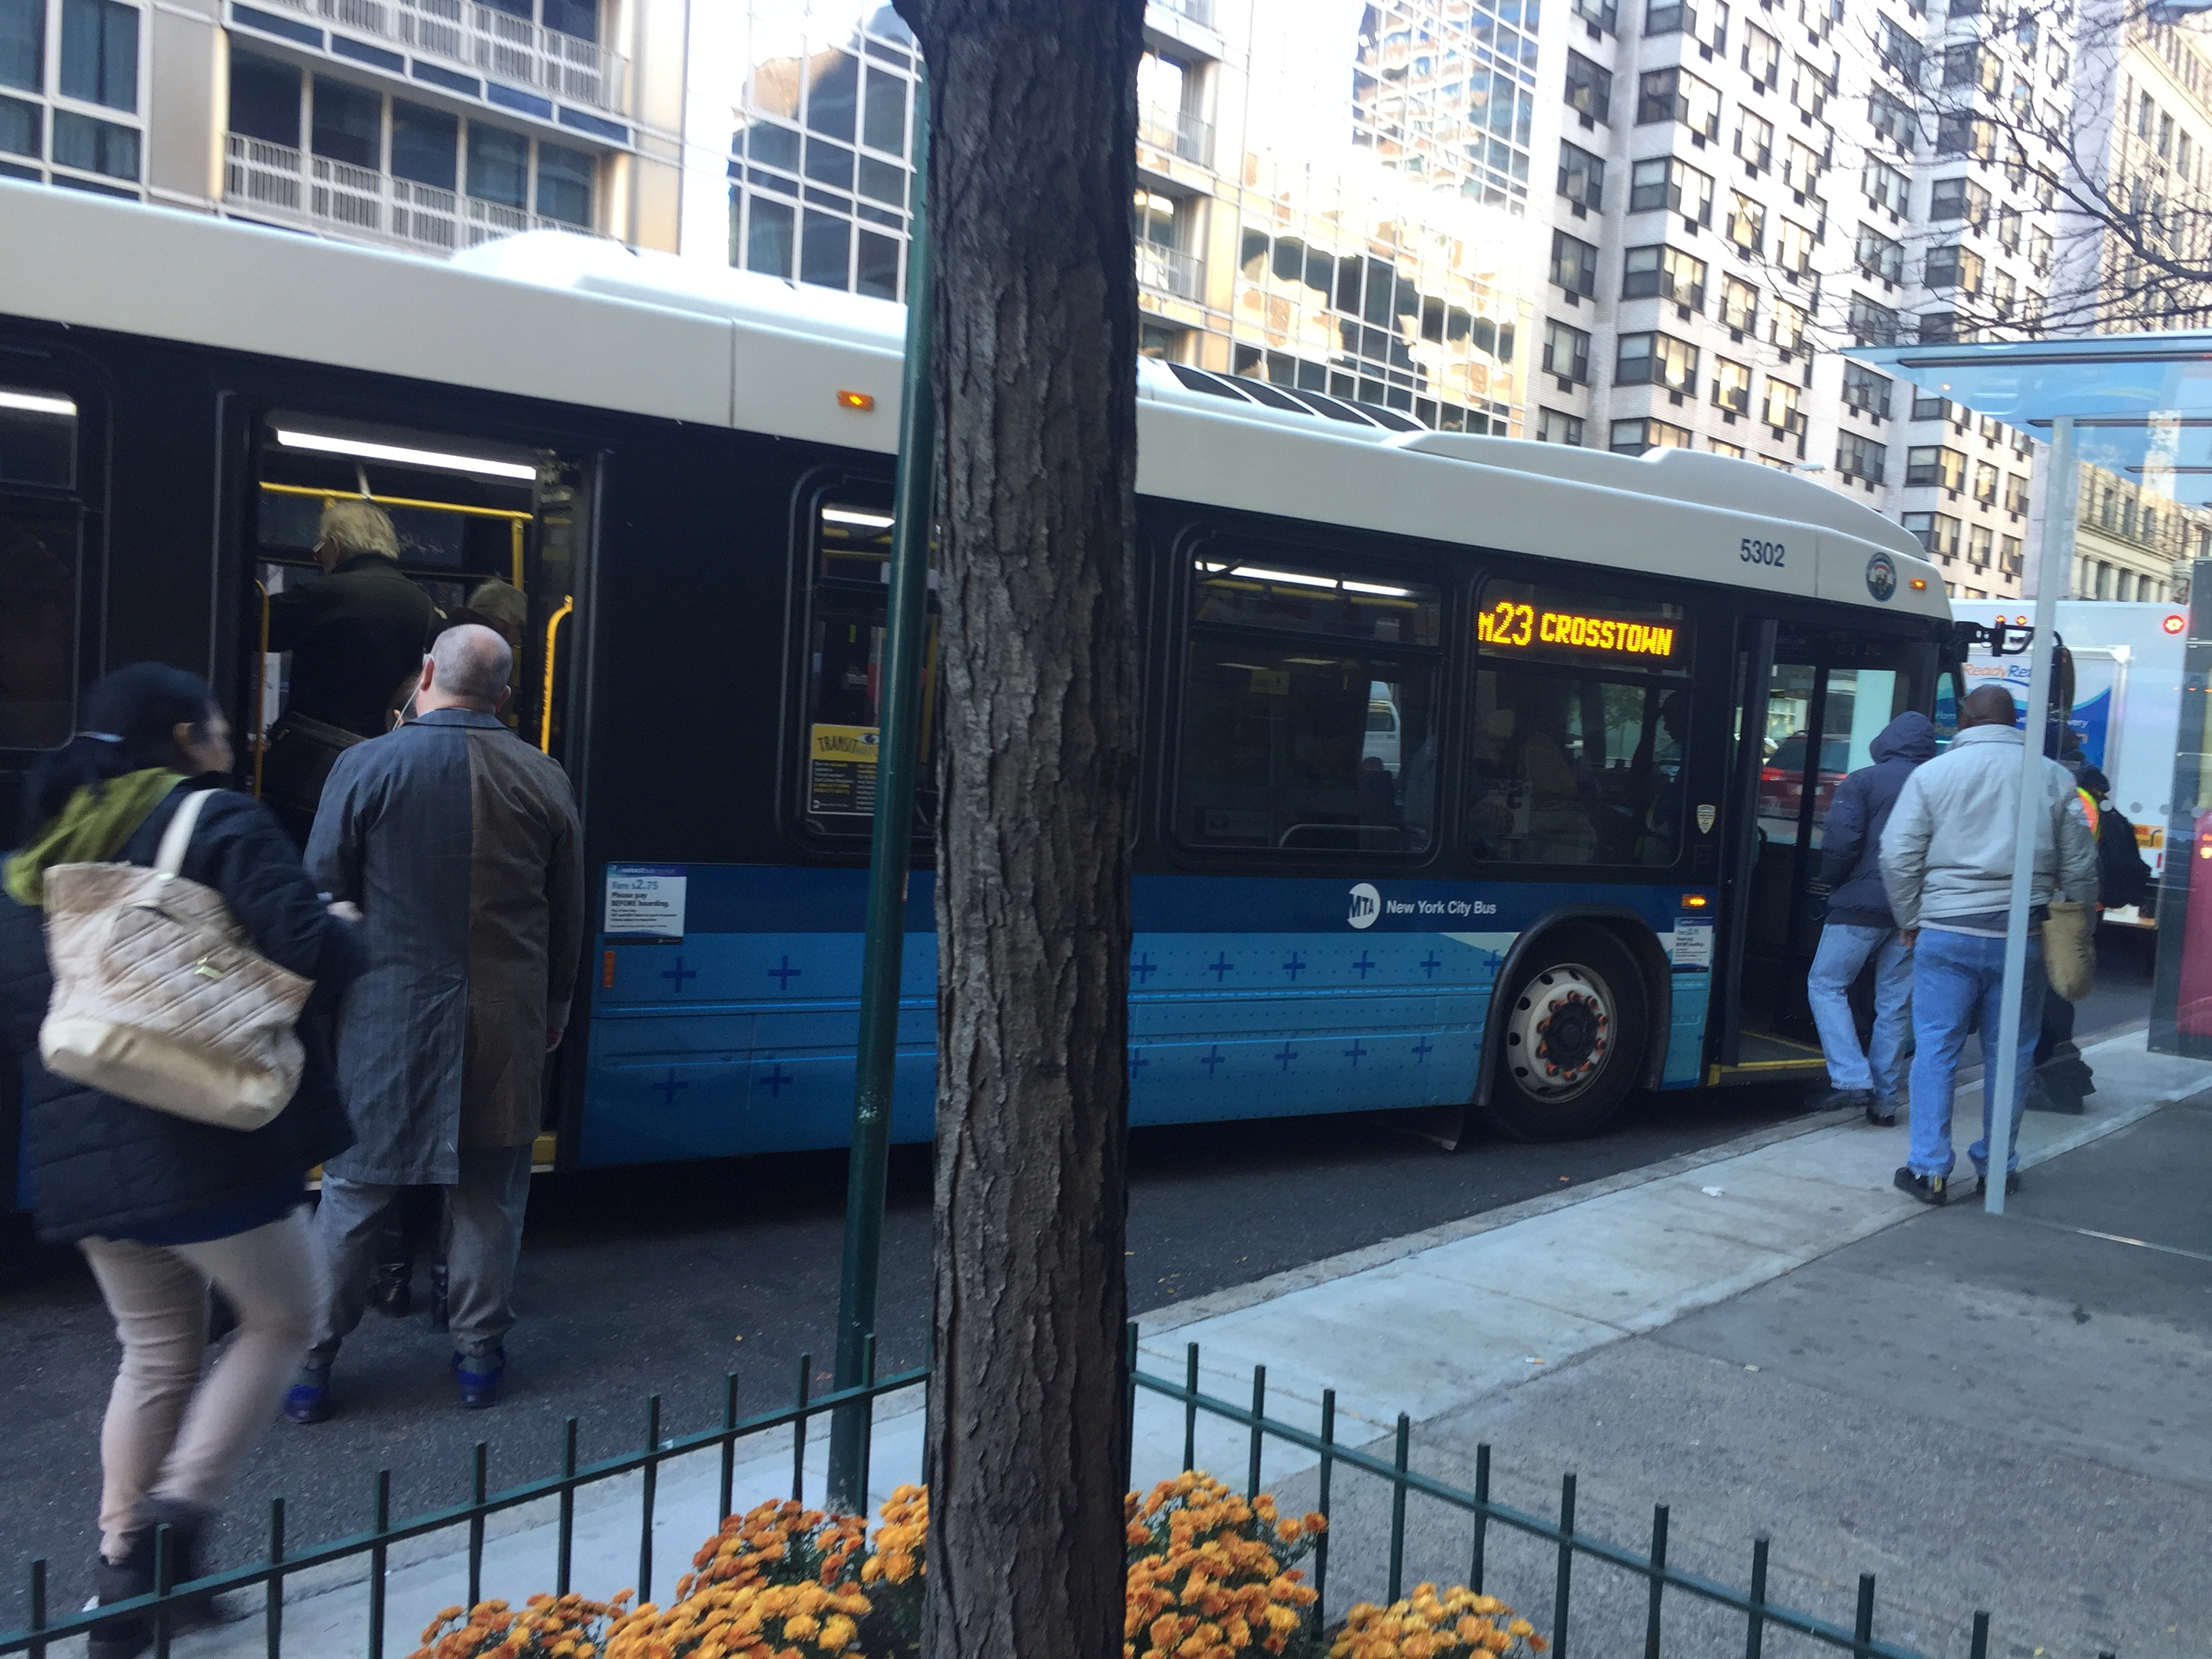 Off-board fare enables faster boarding on the city's Select Bus Service lines. Photo: David Meyer